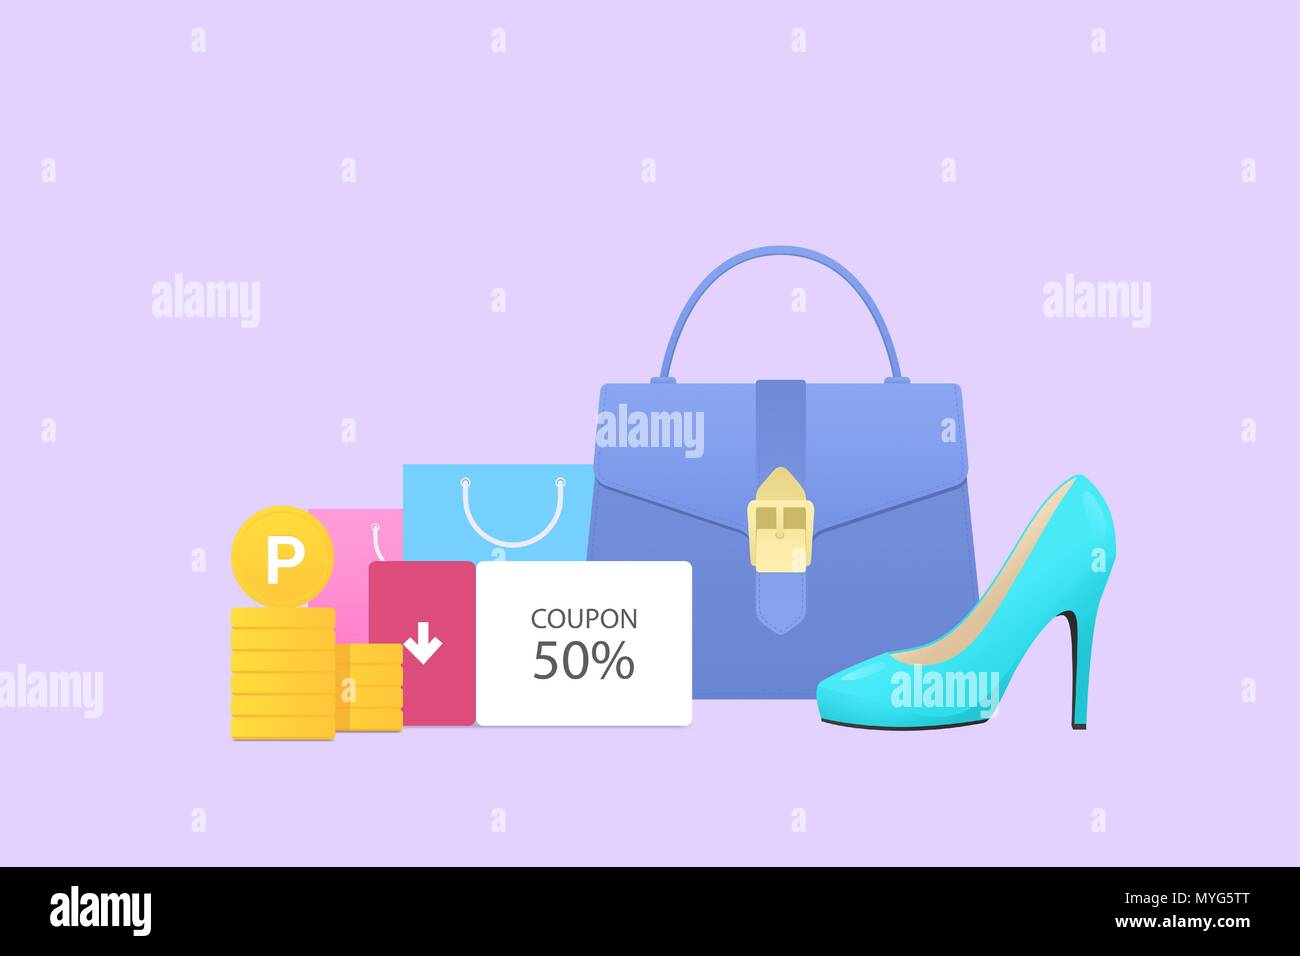 Flat design for online shopping. Flat style objects vector illustration 017 - Stock Vector